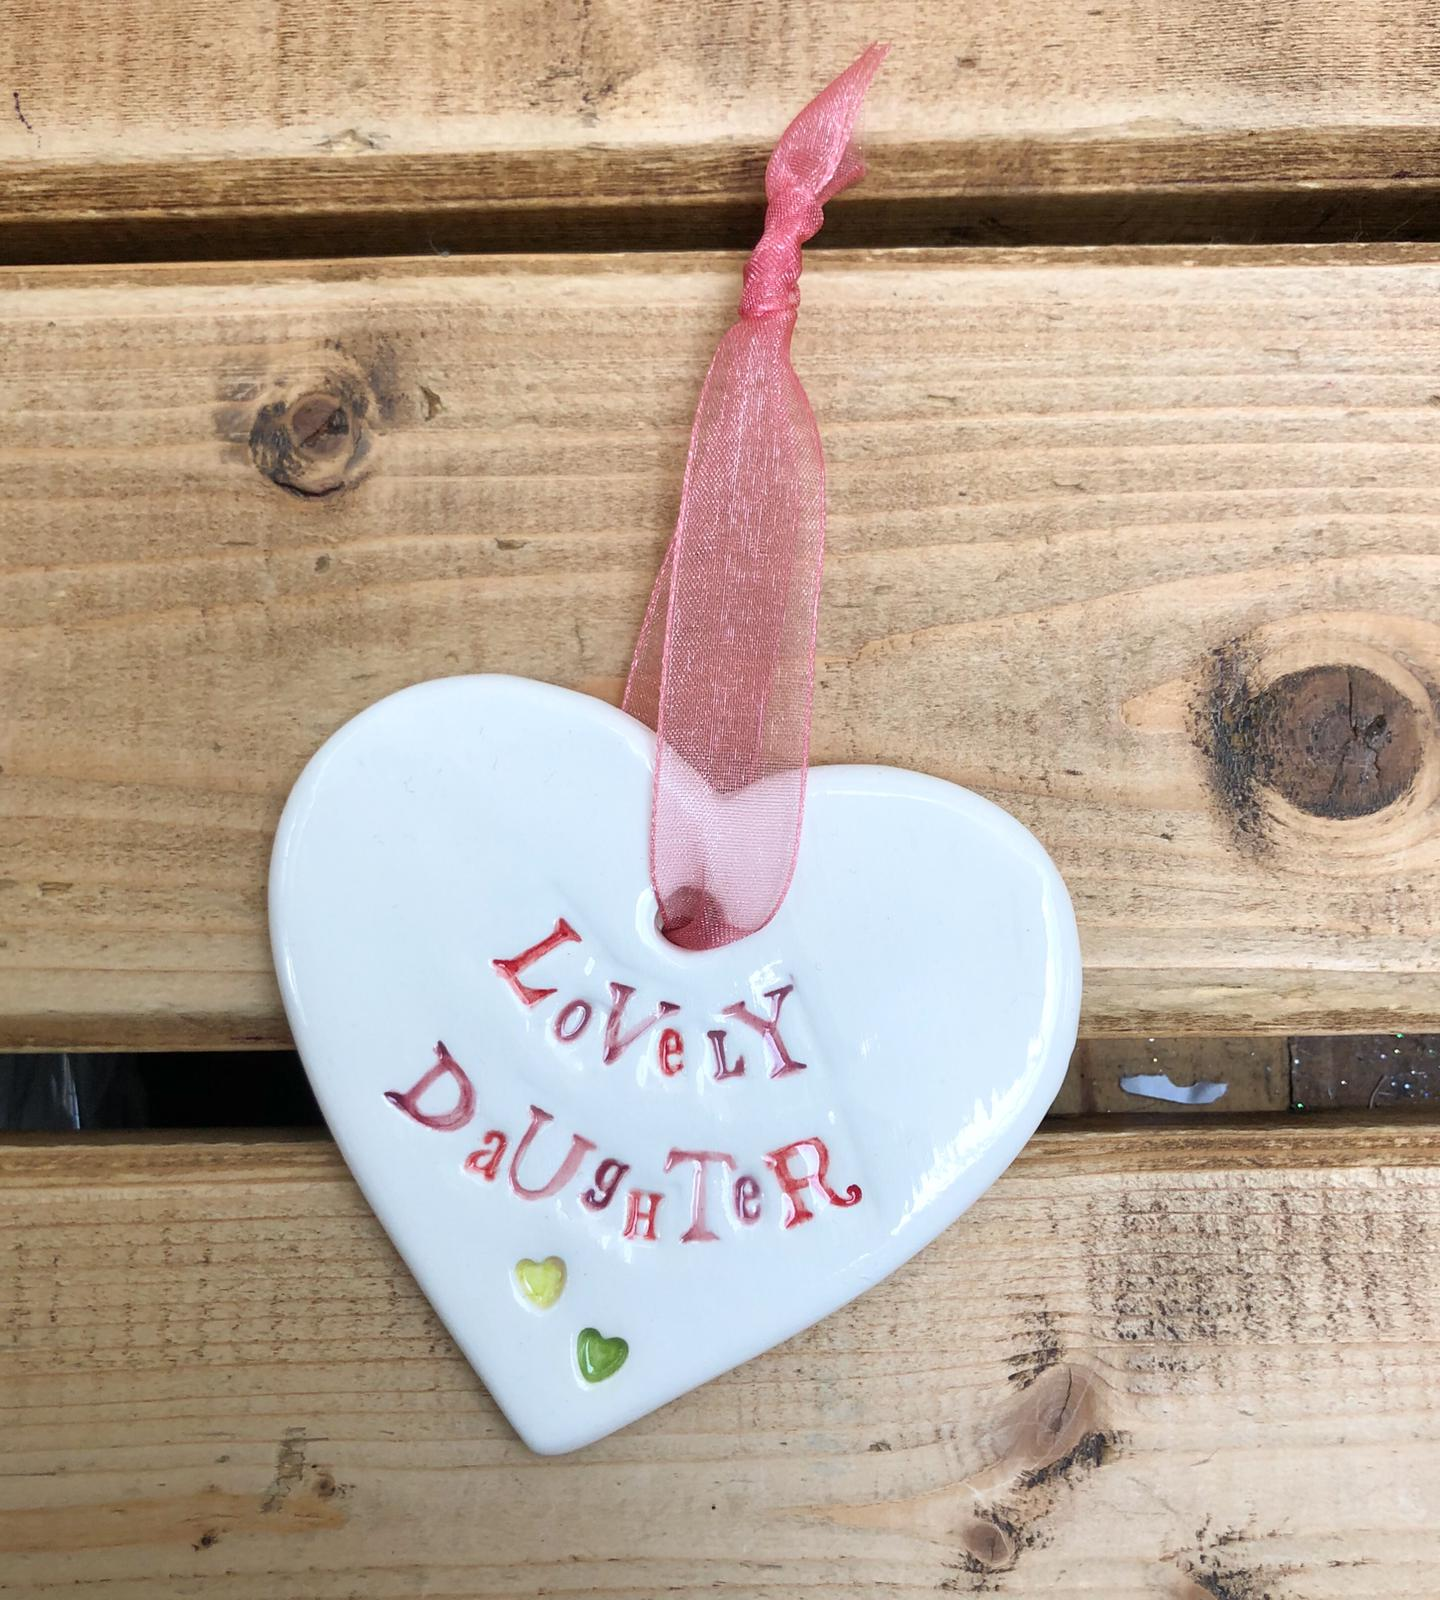 Hand painted ceramic heart featuring a flower design and the sentiment 'Lovely Daughter' Handmade in the UK using clay, glaze and paint sourced locally. Material: Ceramic